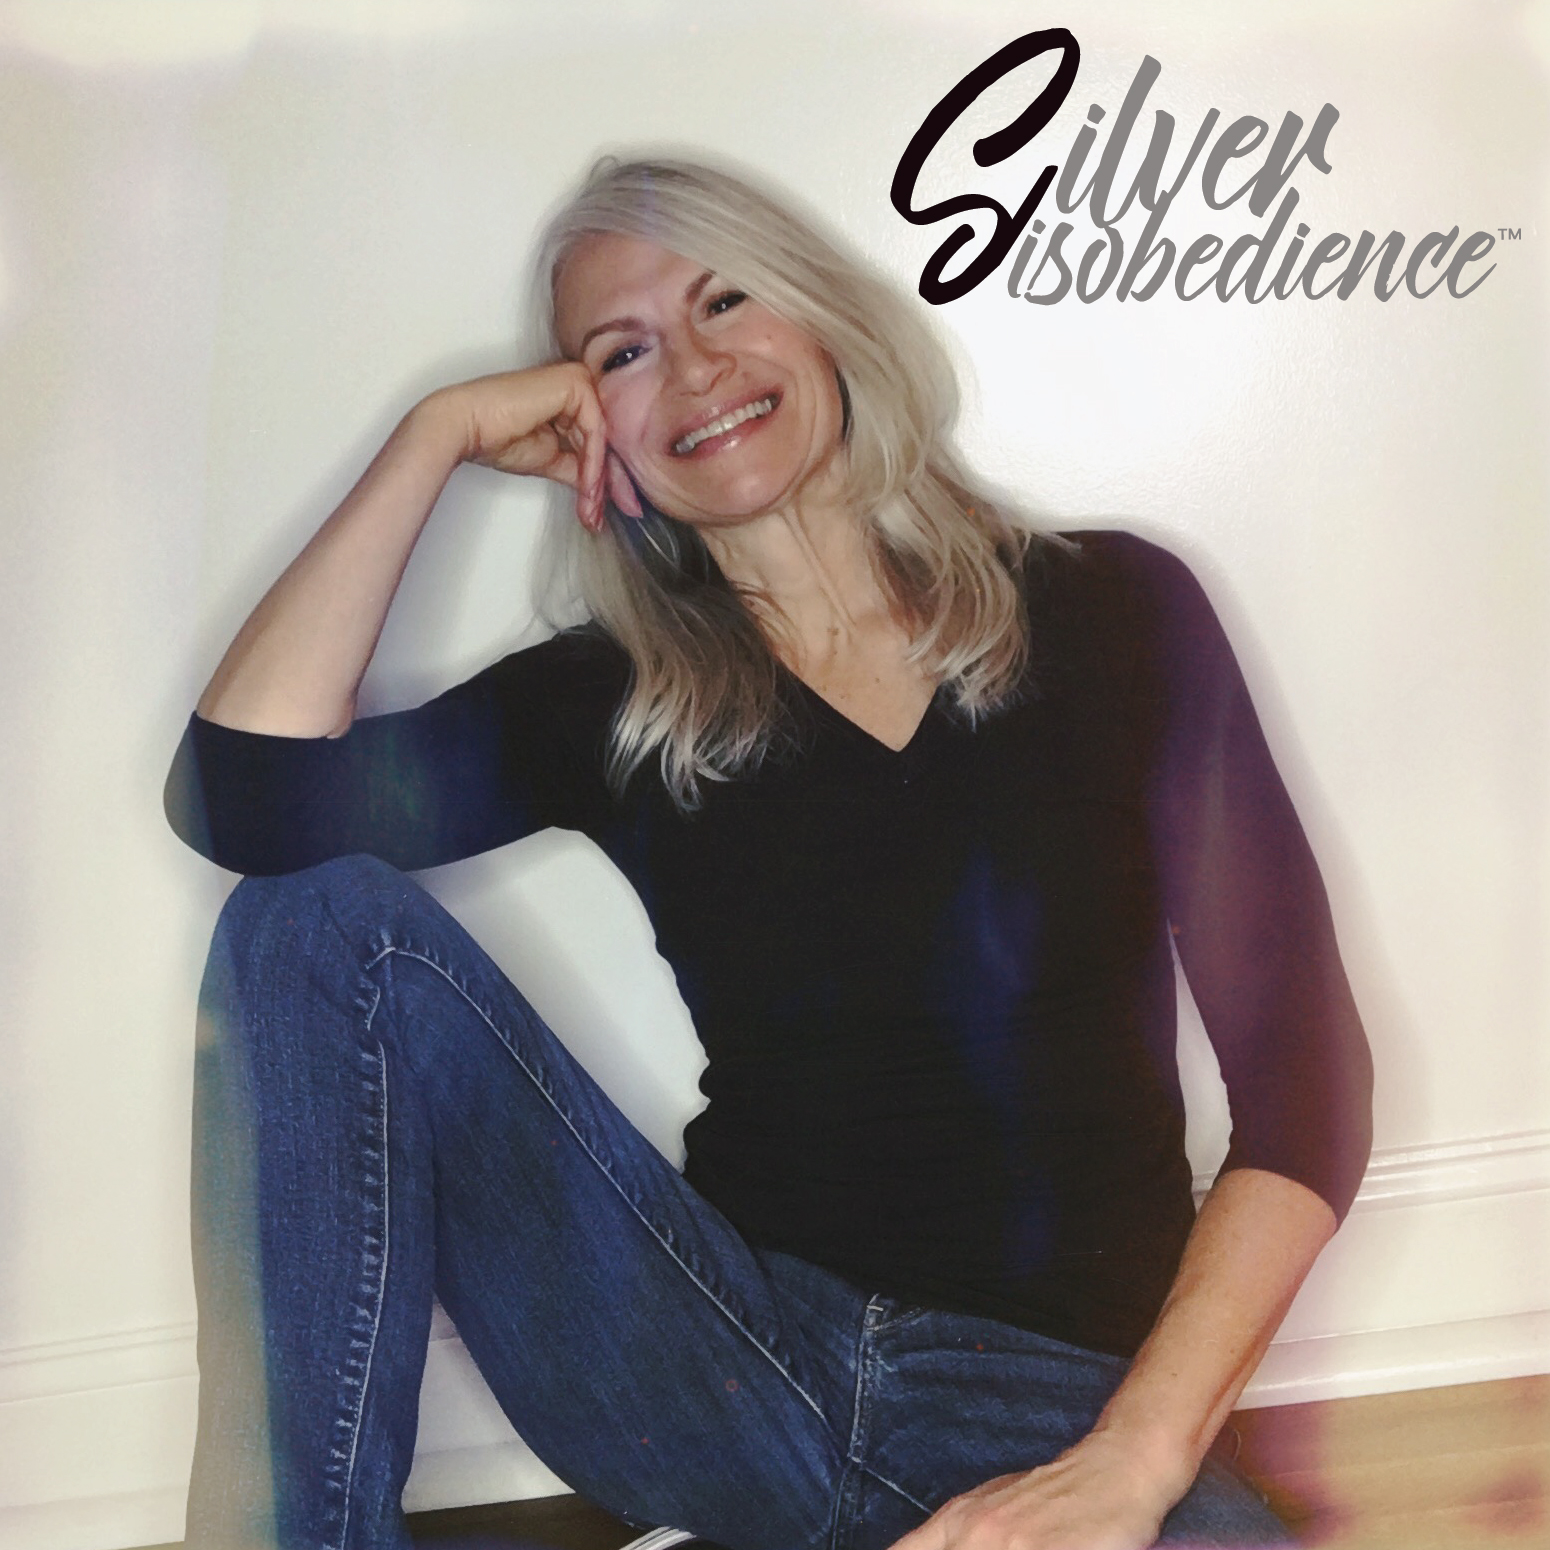 SilverDisobedience - A Rebellion Against Ageism